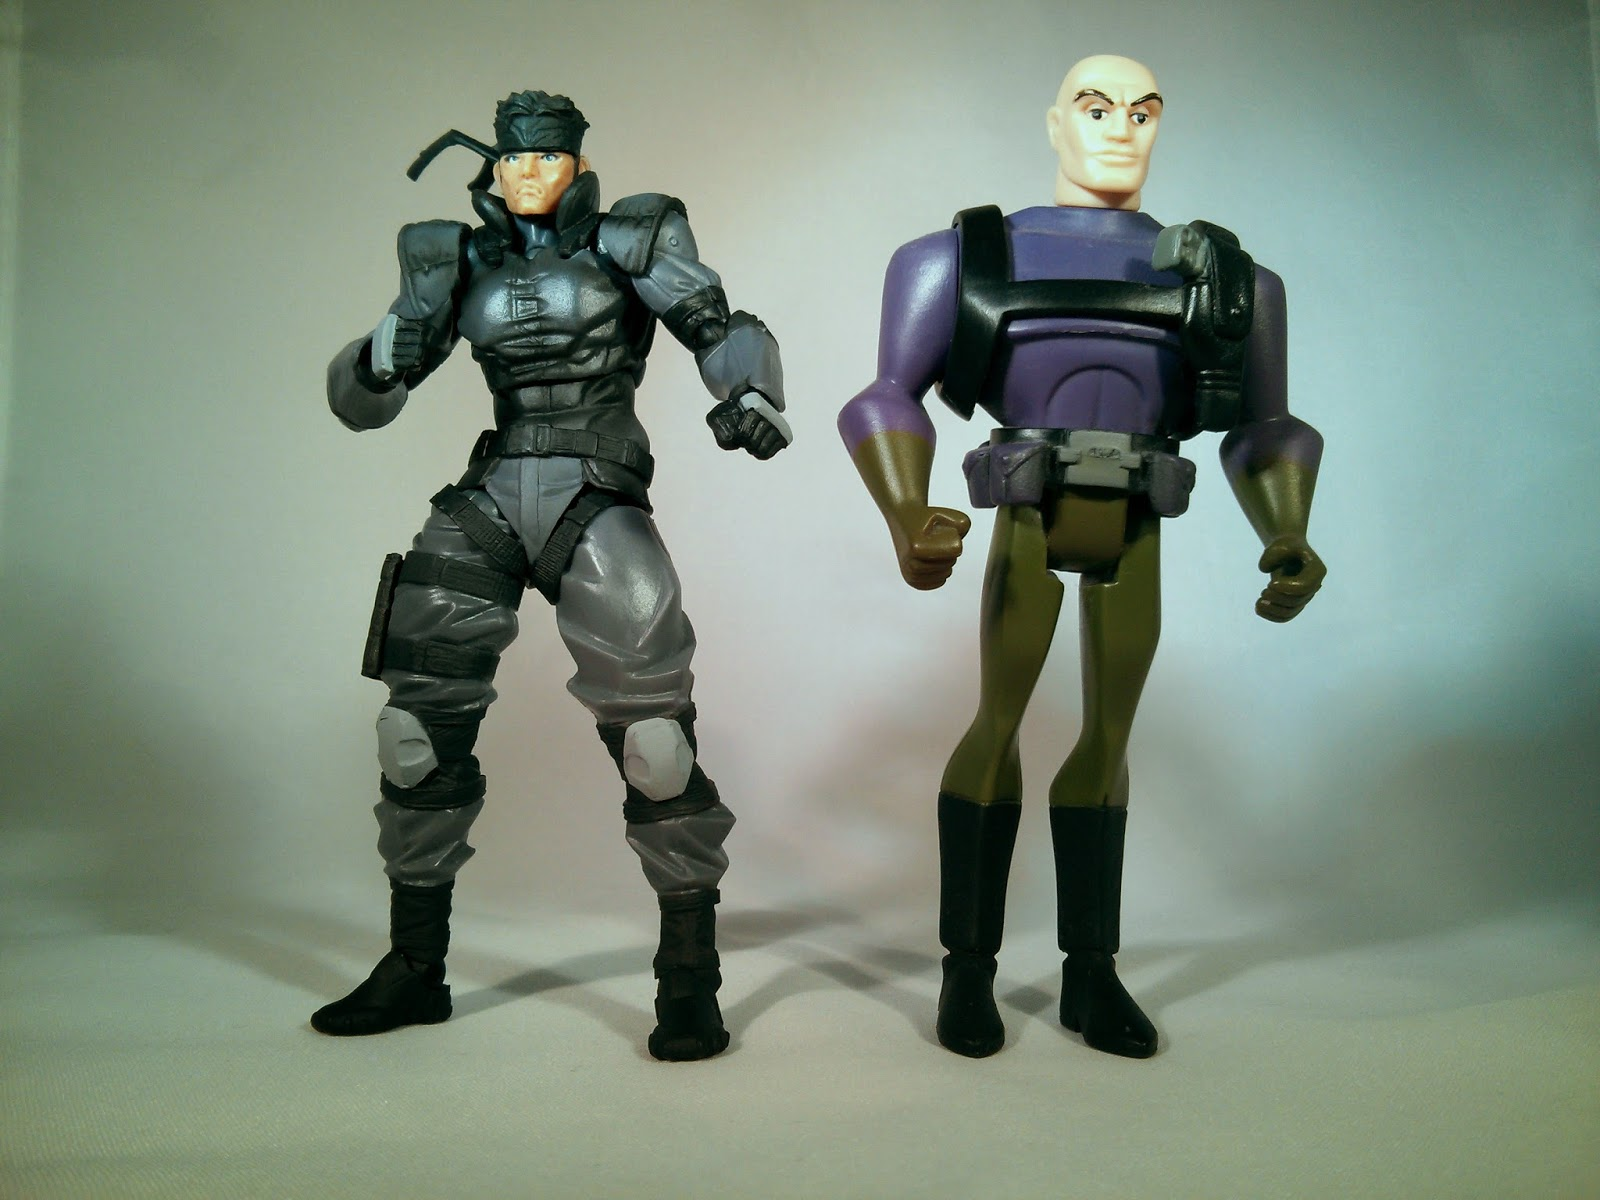 comparing the size with lex luthor